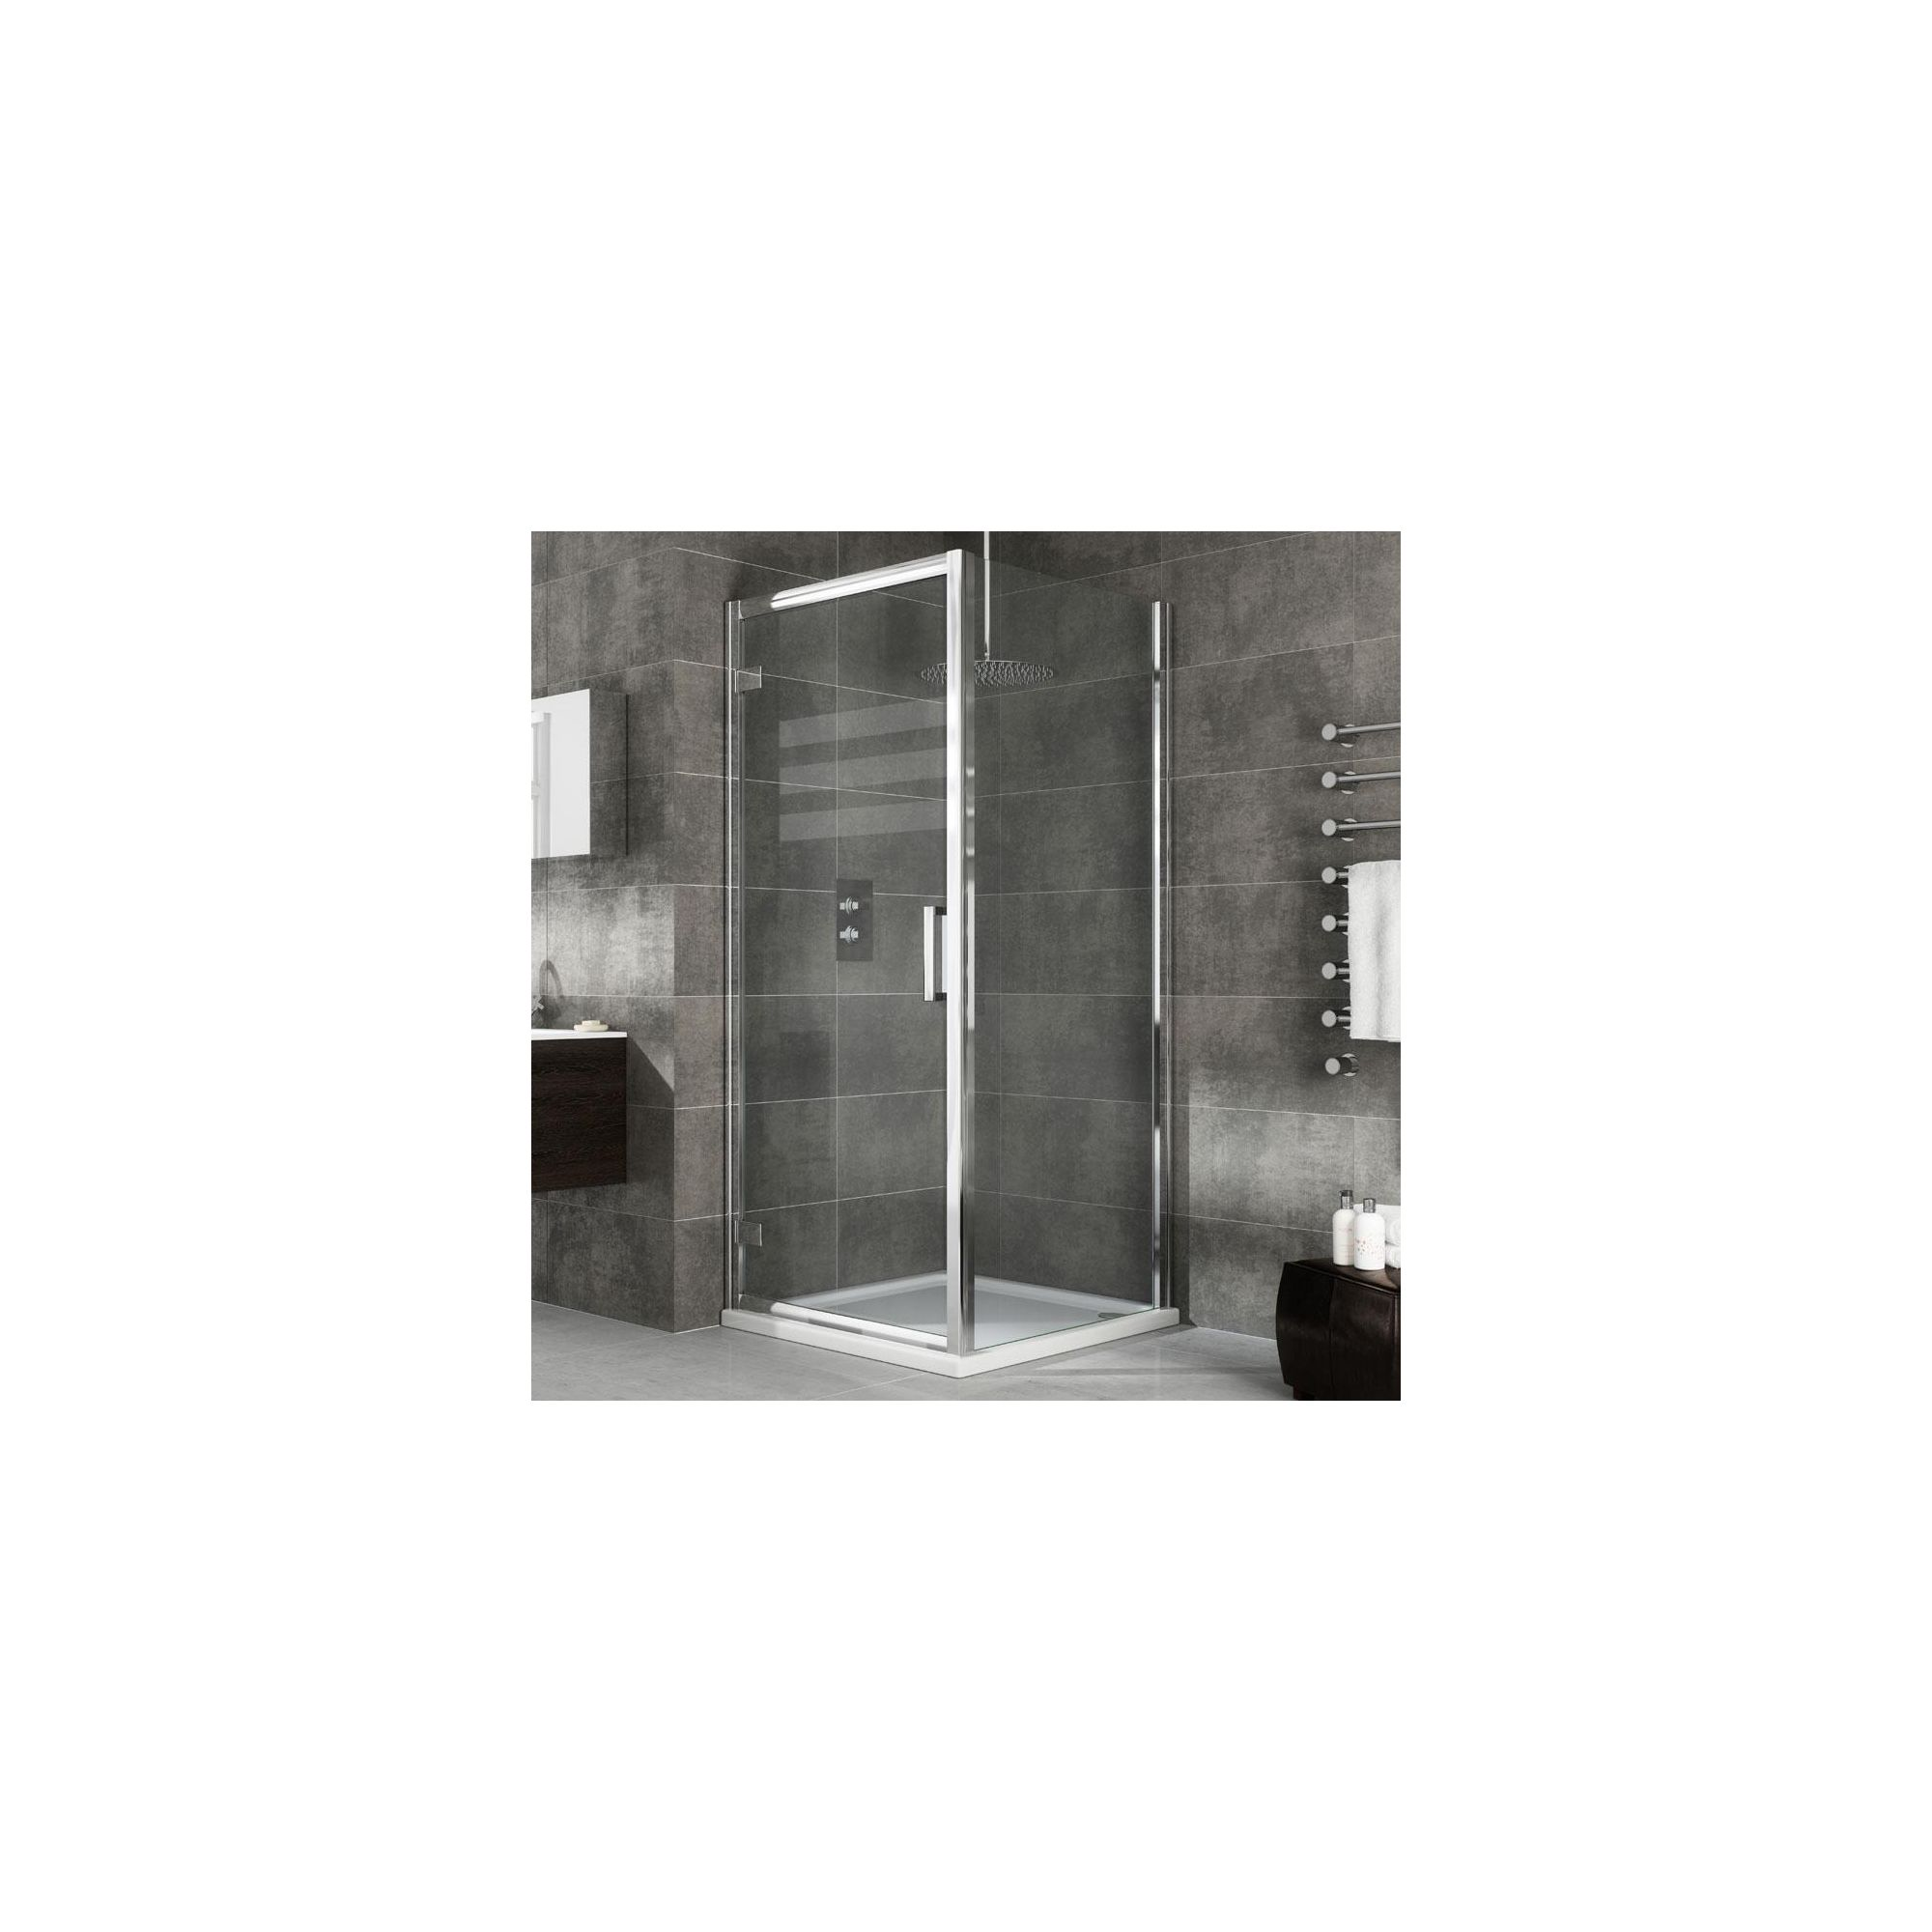 Elemis Eternity Hinged Shower Door, 900mm Wide, 8mm Glass at Tesco Direct